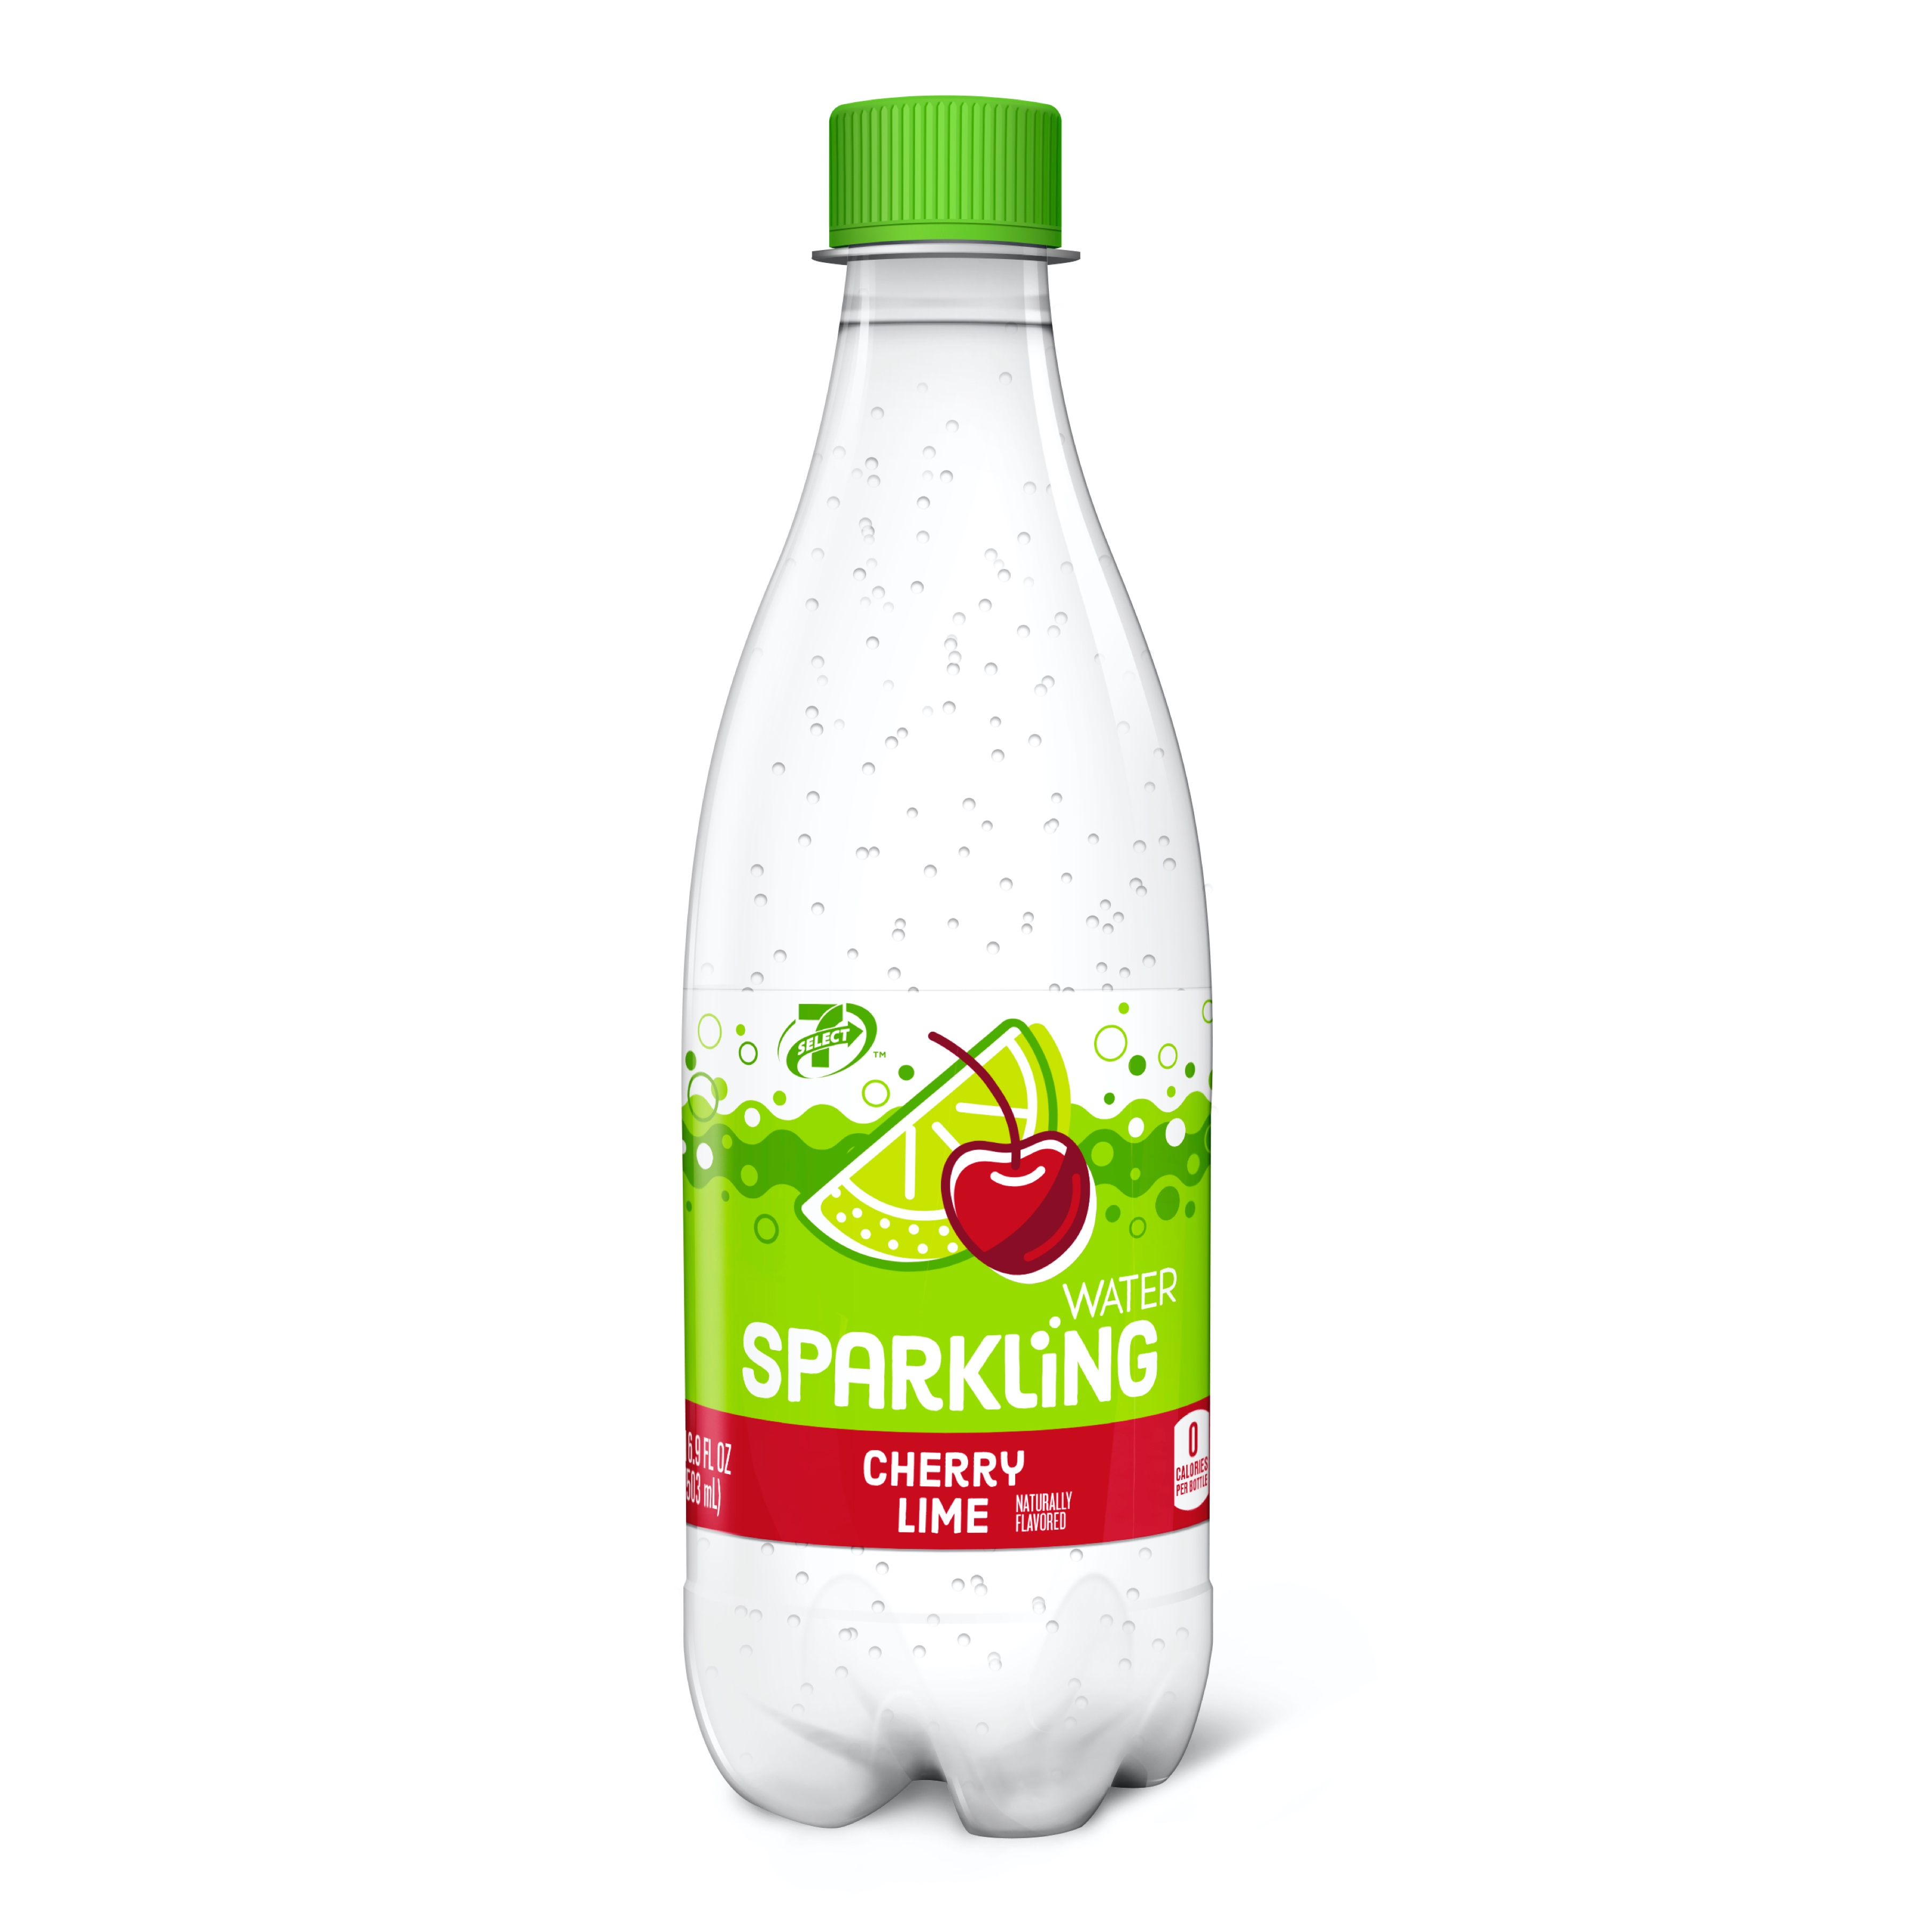 7-Eleven 7-Select sparkling bottled water in Cherry & Lime flavor